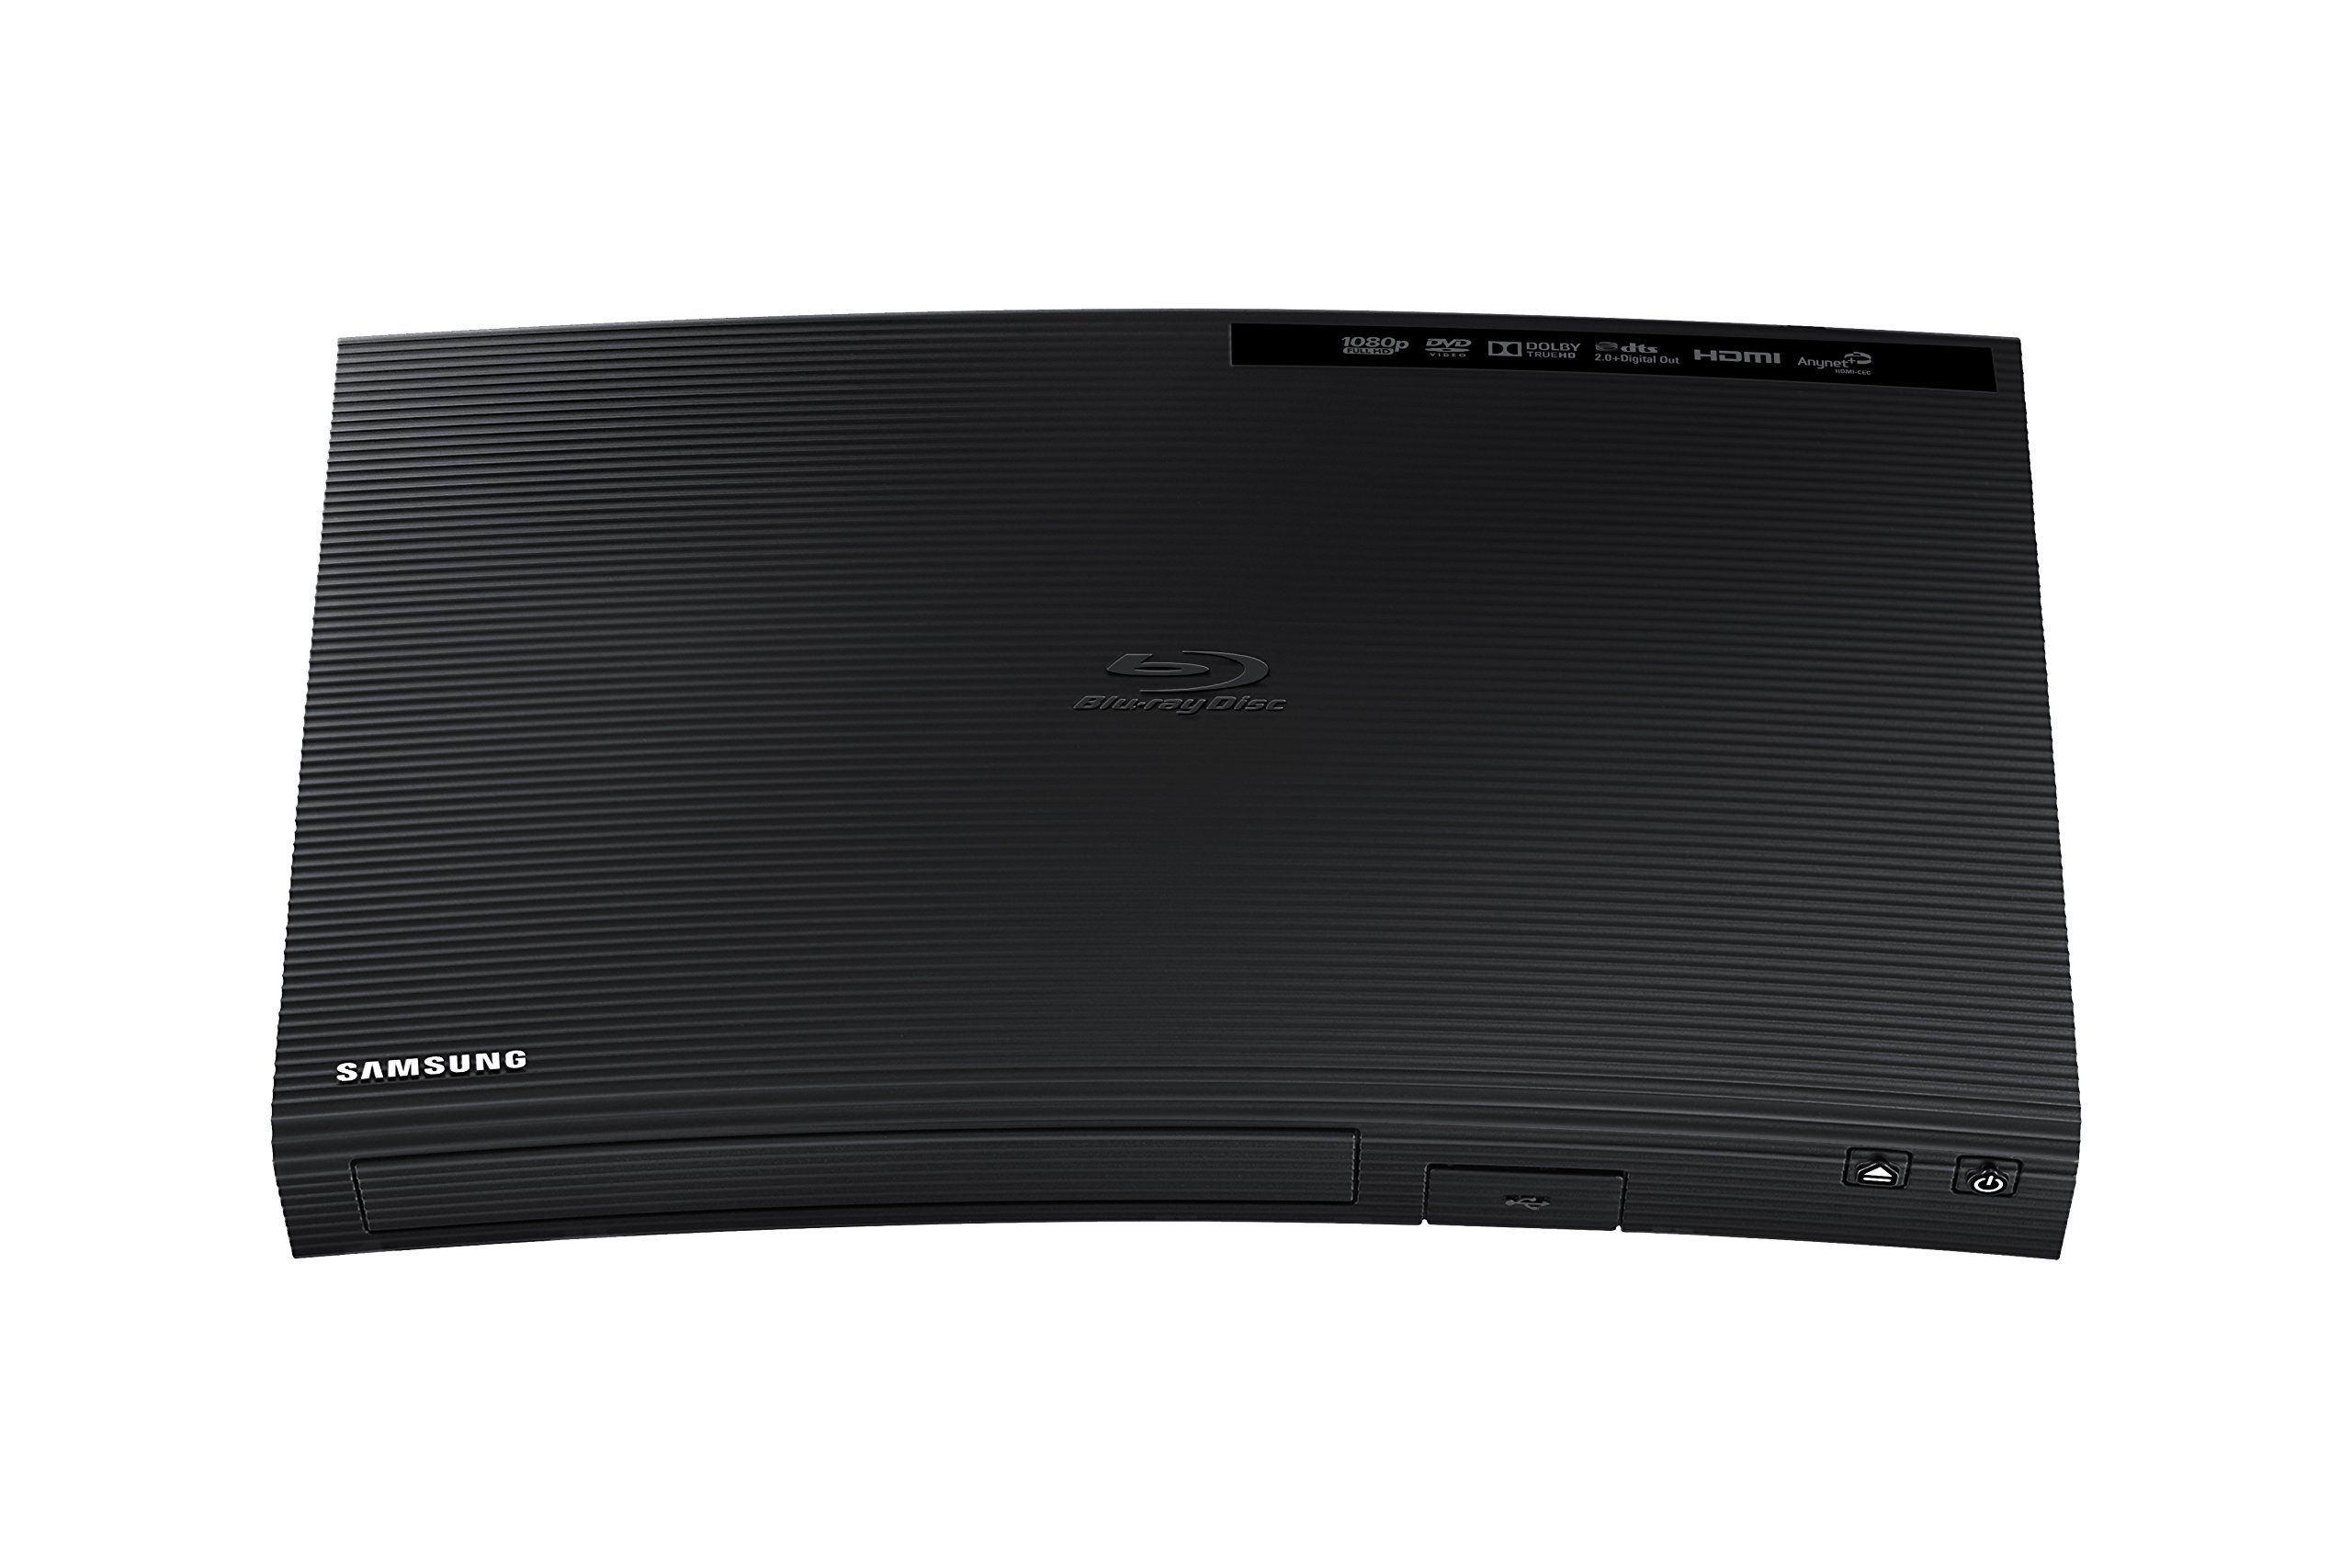 Samsung BD-J5100 1080p 1 Disc(s) Blu-ray Disc Player Model BD-J5100/ZA by Samsung